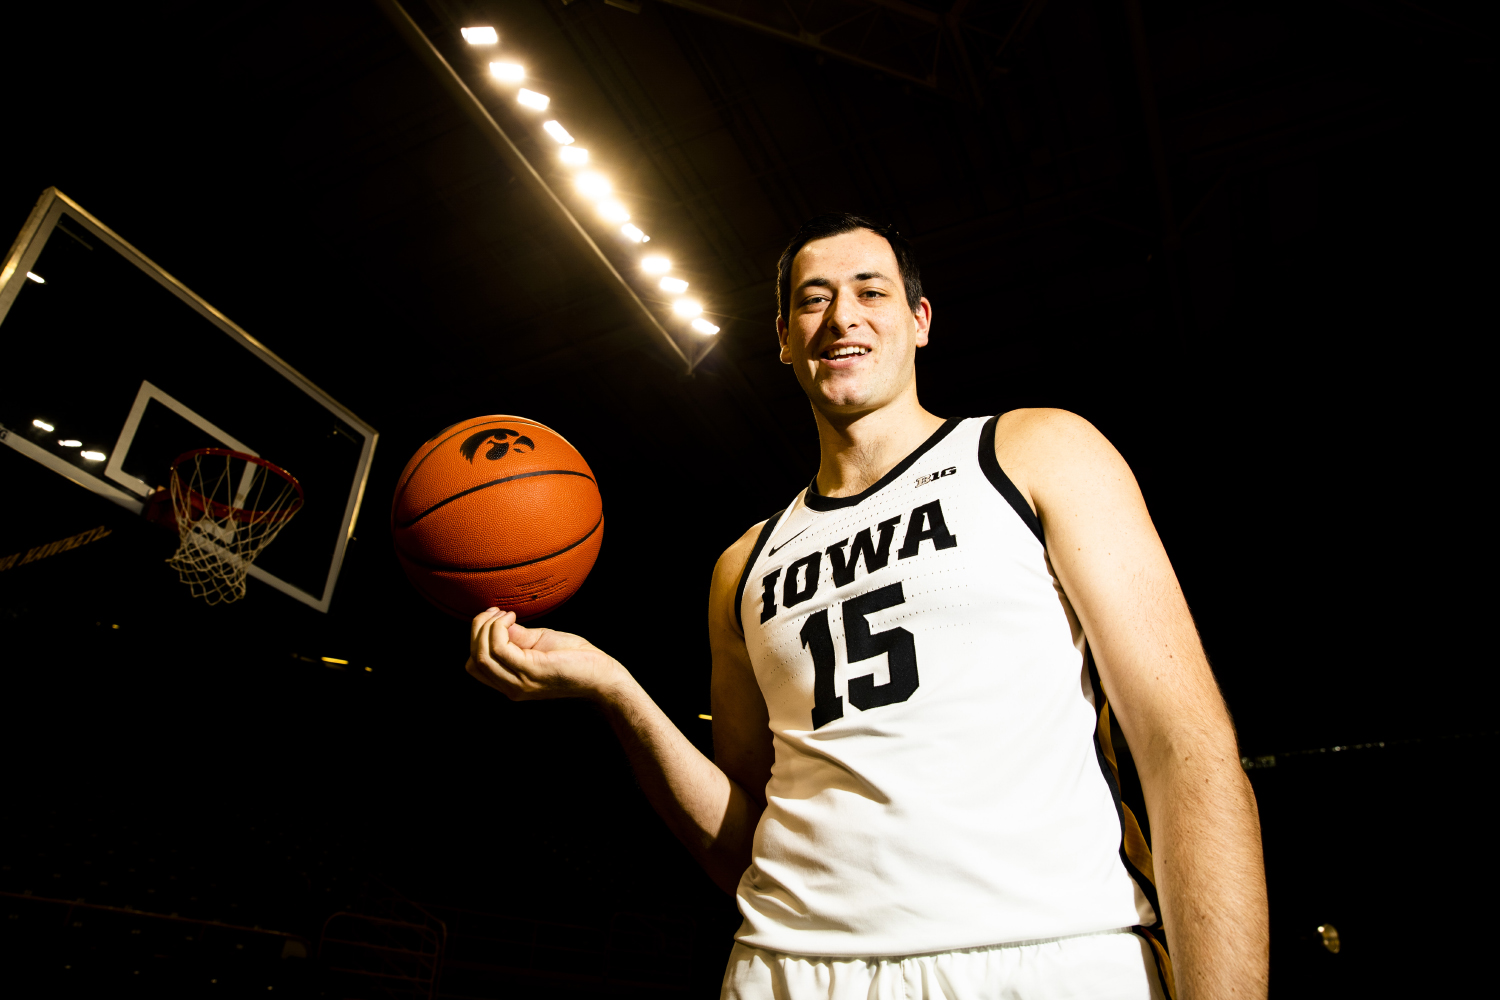 Iowa forward Ryan Kriener poses for a portrait during Basketball Media Day at Carver-Hawkeye Arena on Wednesday, October 9, 2019. The Hawkeyes will open their season on November 4, 2019 against Lindsey Wilson College in their exhibition game. (Katina Zentz/The Daily Iowan)